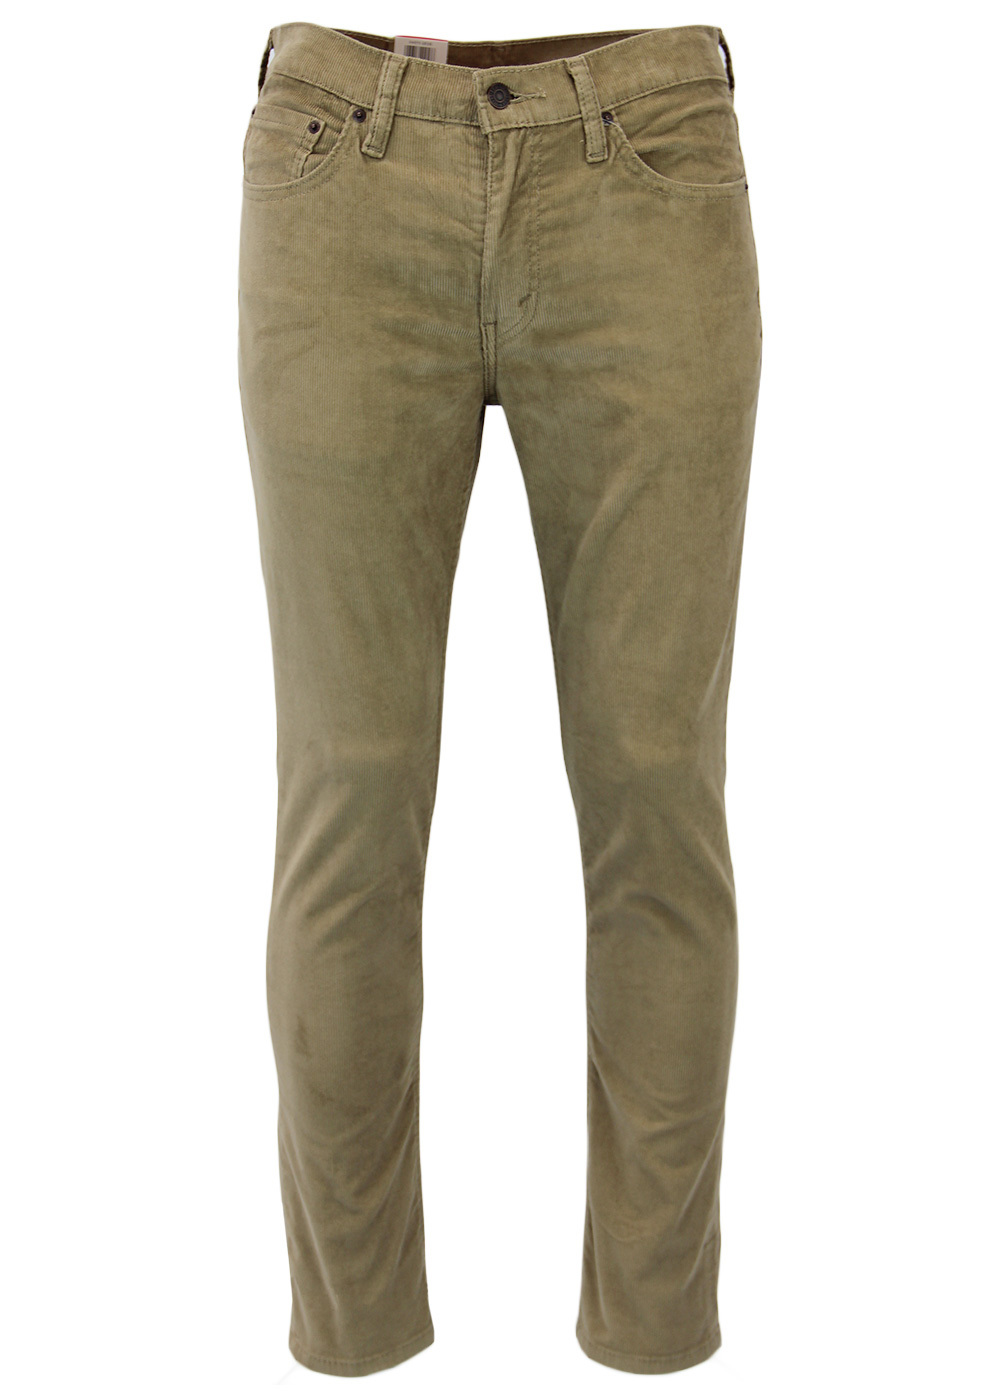 Shop for mens corduroy jeans online at Target. Free shipping on purchases over $35 and save 5% every day with your Target REDcard.